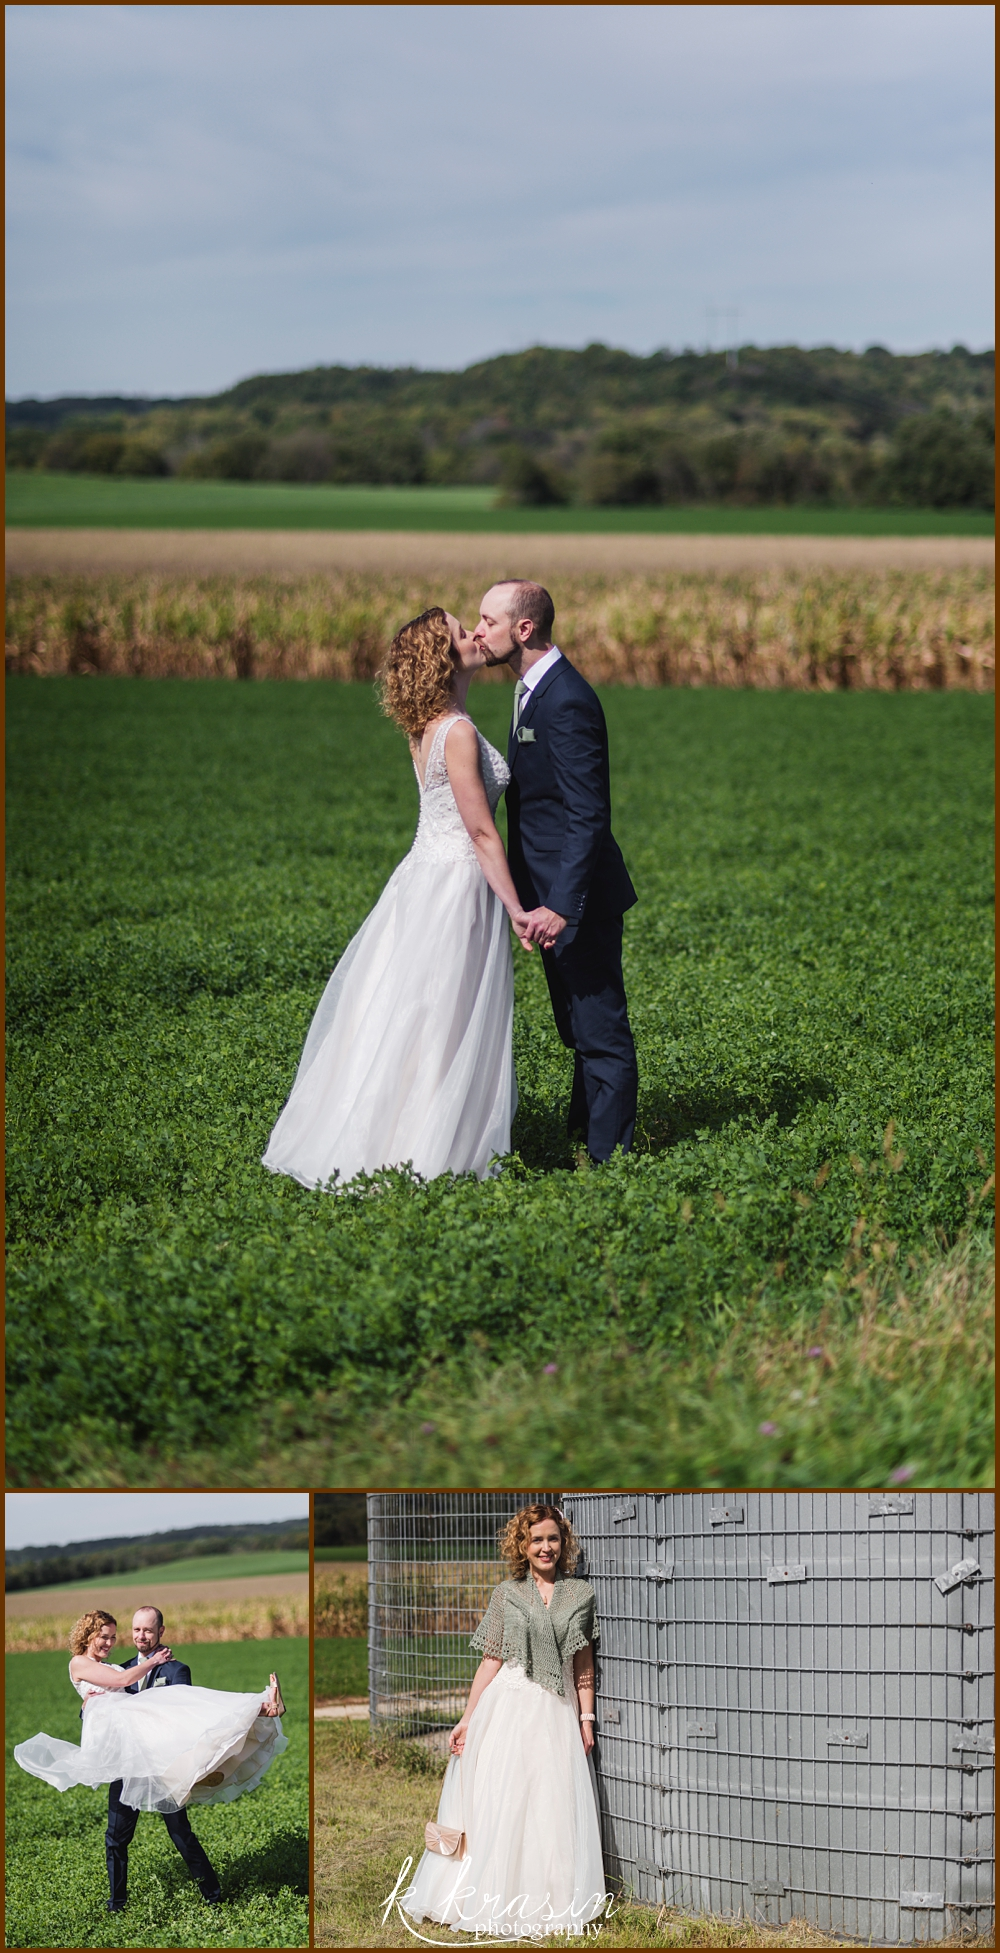 Collage of photos of bride and groom in field